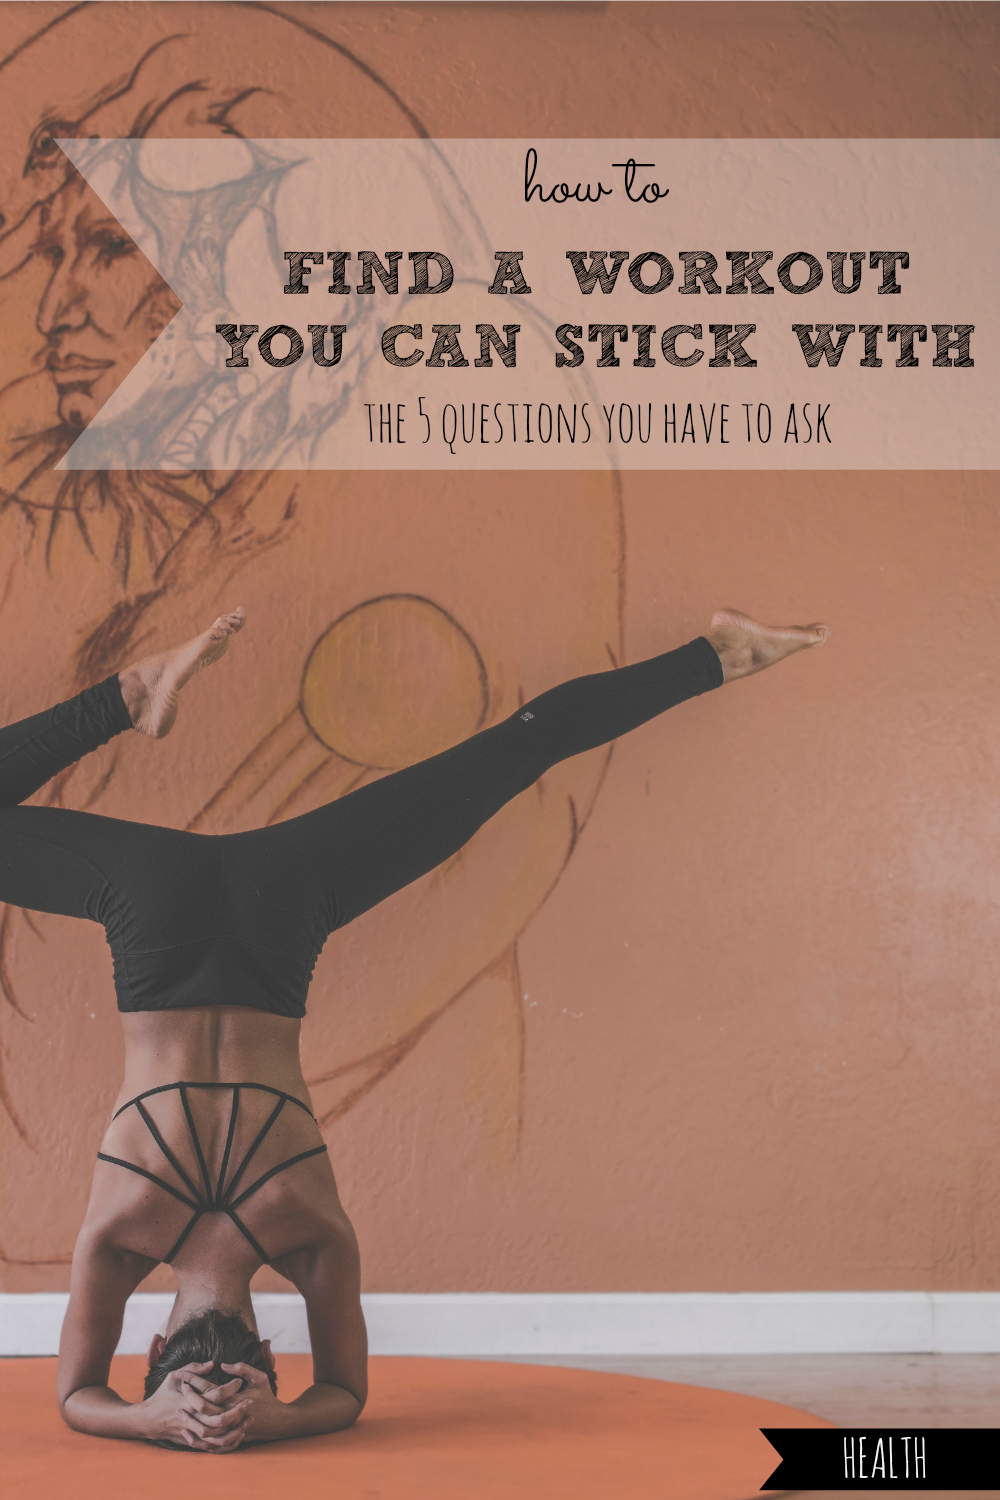 Ever struggle to find a workout that you don't want to quit after 3 days? Here's how to use just 5 questions to finally find a workout you can stick with TODAY! #find #a #workout #workouts #exercise #exercises #activity #activities #active #sport #sports #tip #tips #routine #routines #location #affordable #affordability #effective #effectiveness